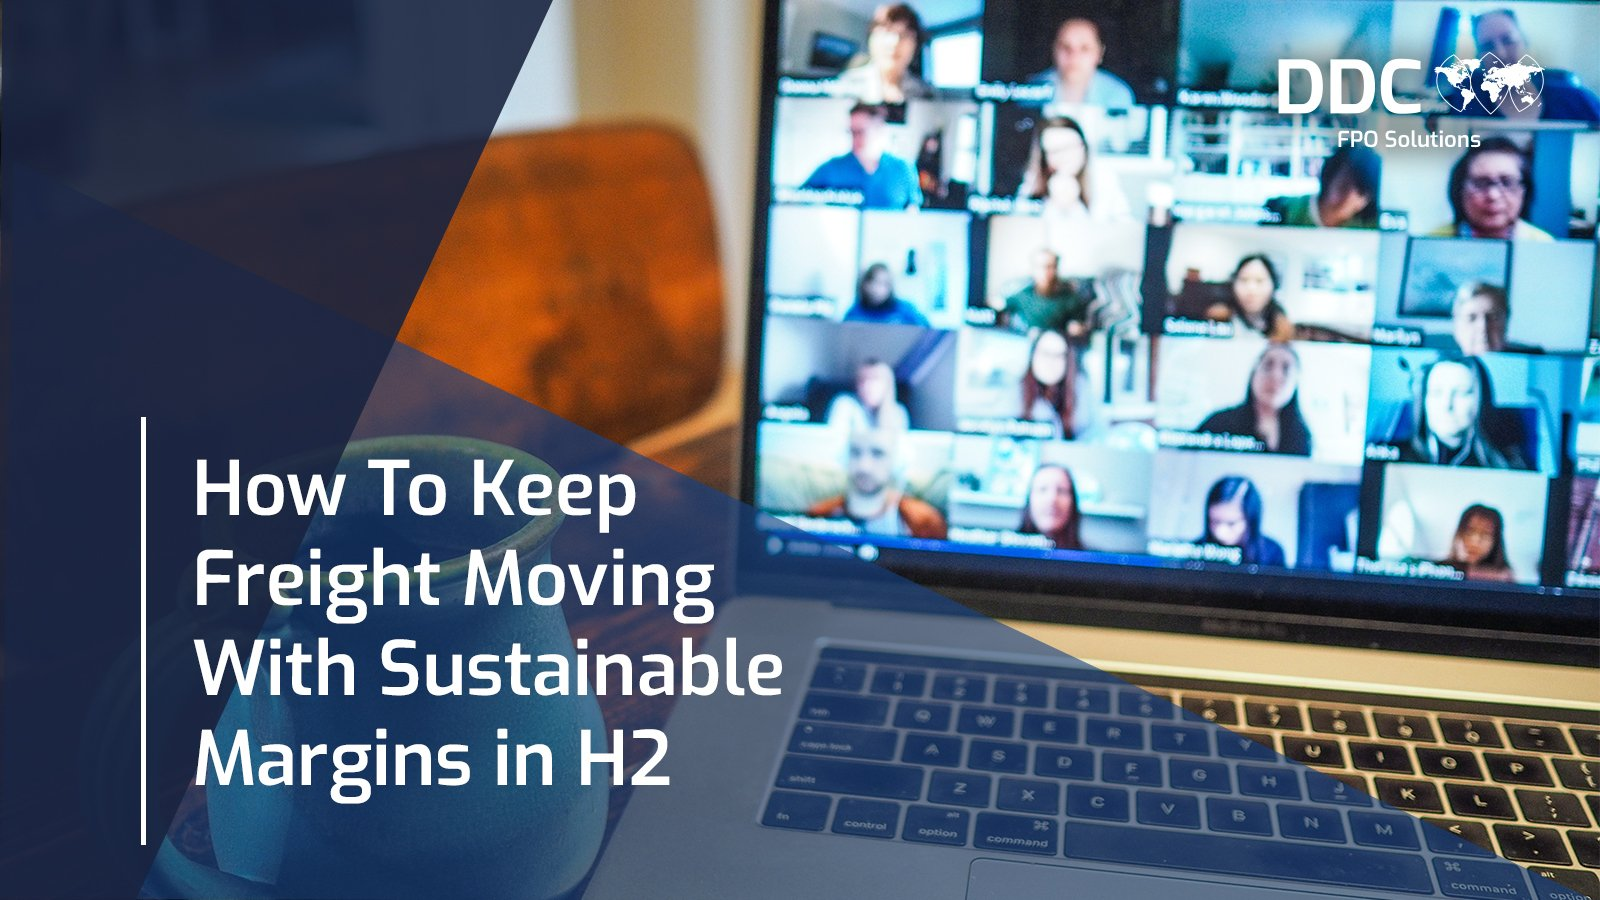 How To Keep Freight Moving With Sustainable Margins in H2